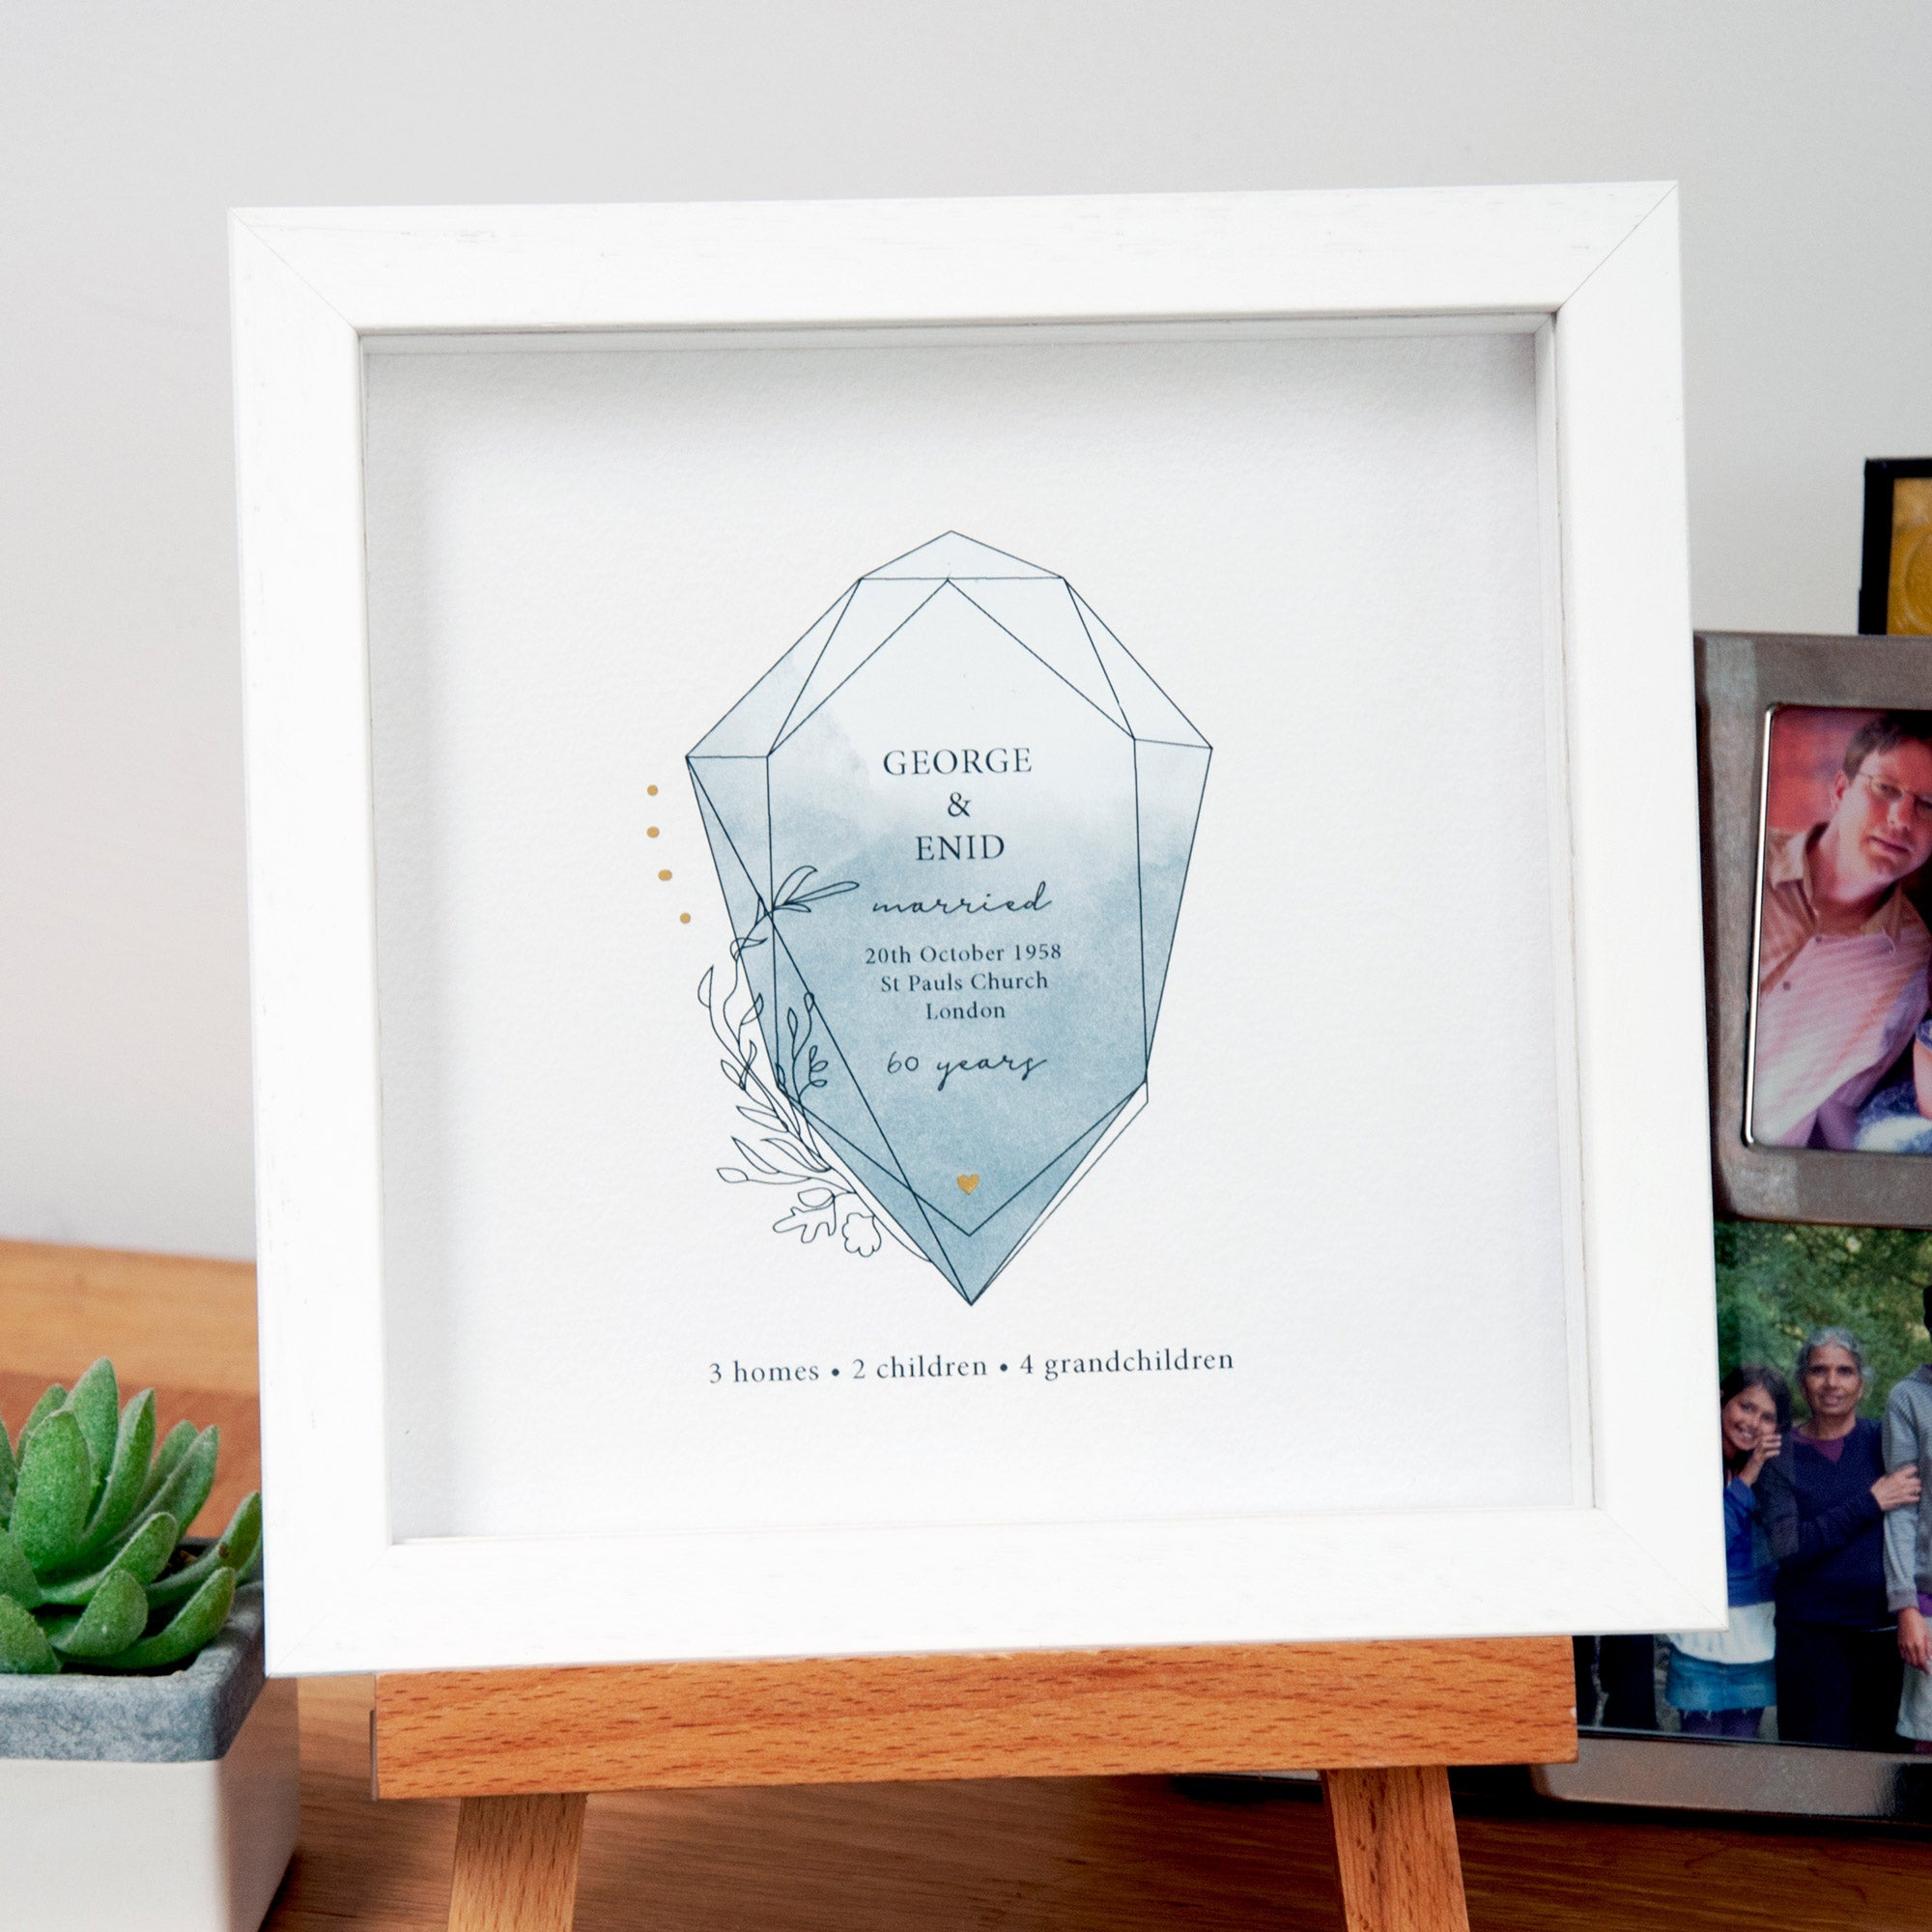 antdesigngifts.co.uk 60th anniversary gift personalised with couples names, date, place and city of wedding with number of homes, children and grandchildren. In grey colour with gold accents